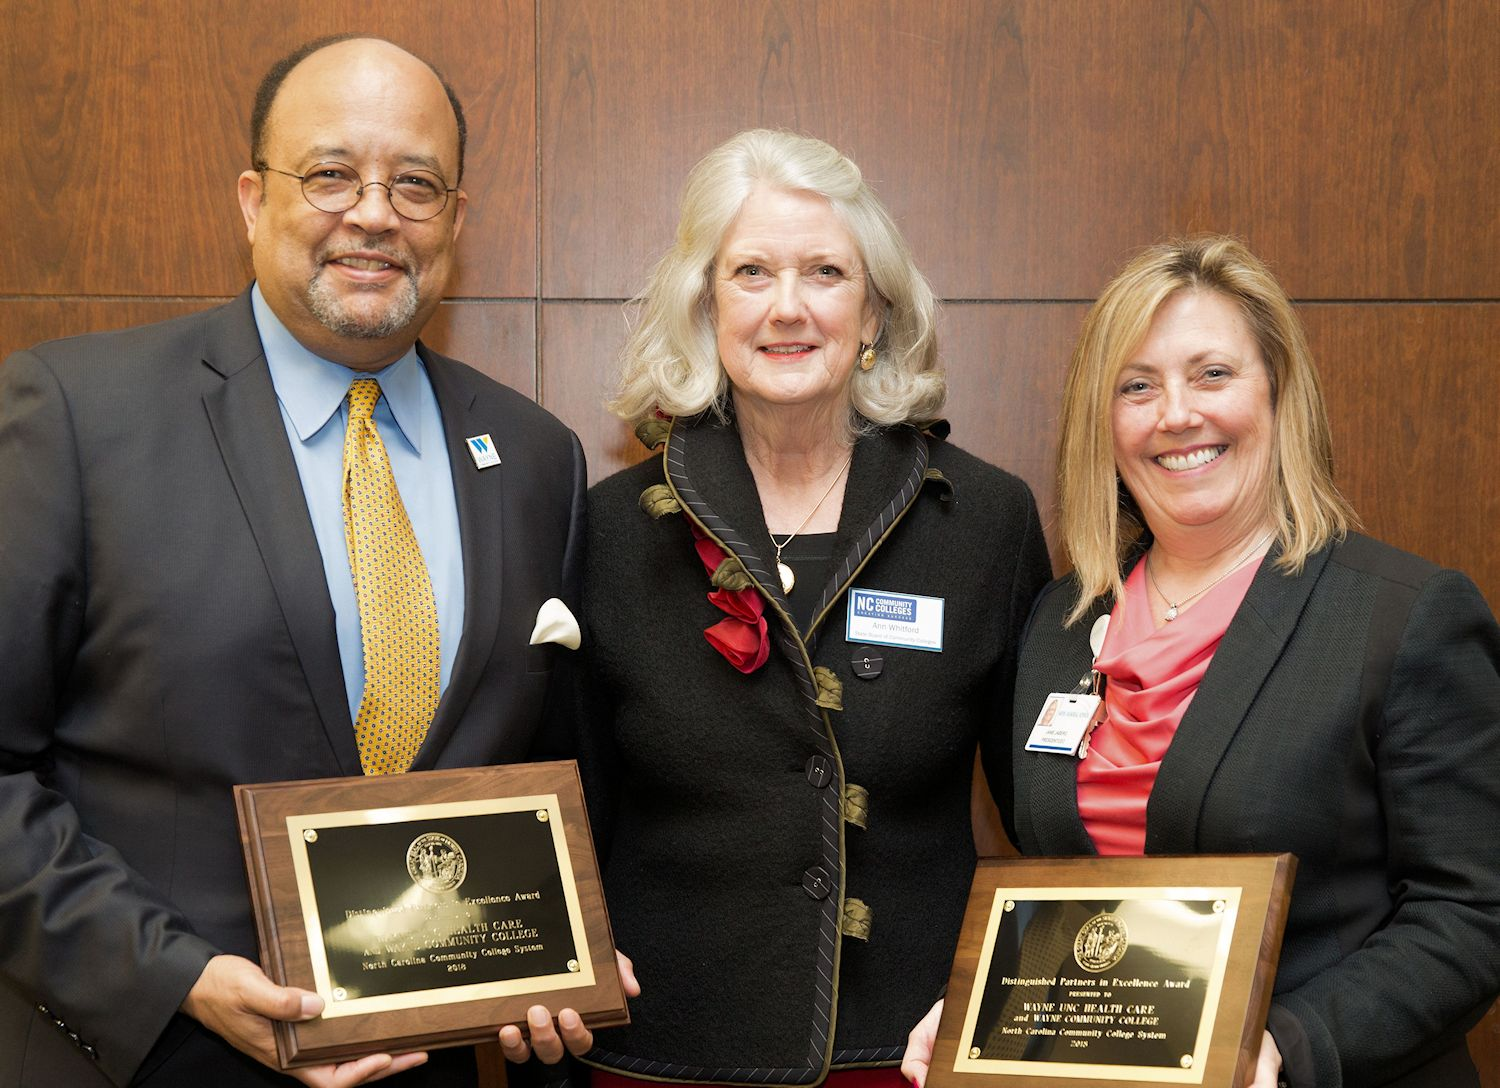 State Board of Community Colleges member standing with WCC President and Wayne UNC Health Care President and CEO, both of which have .Distinguished Partners in Excellence Award plaques in their hands.